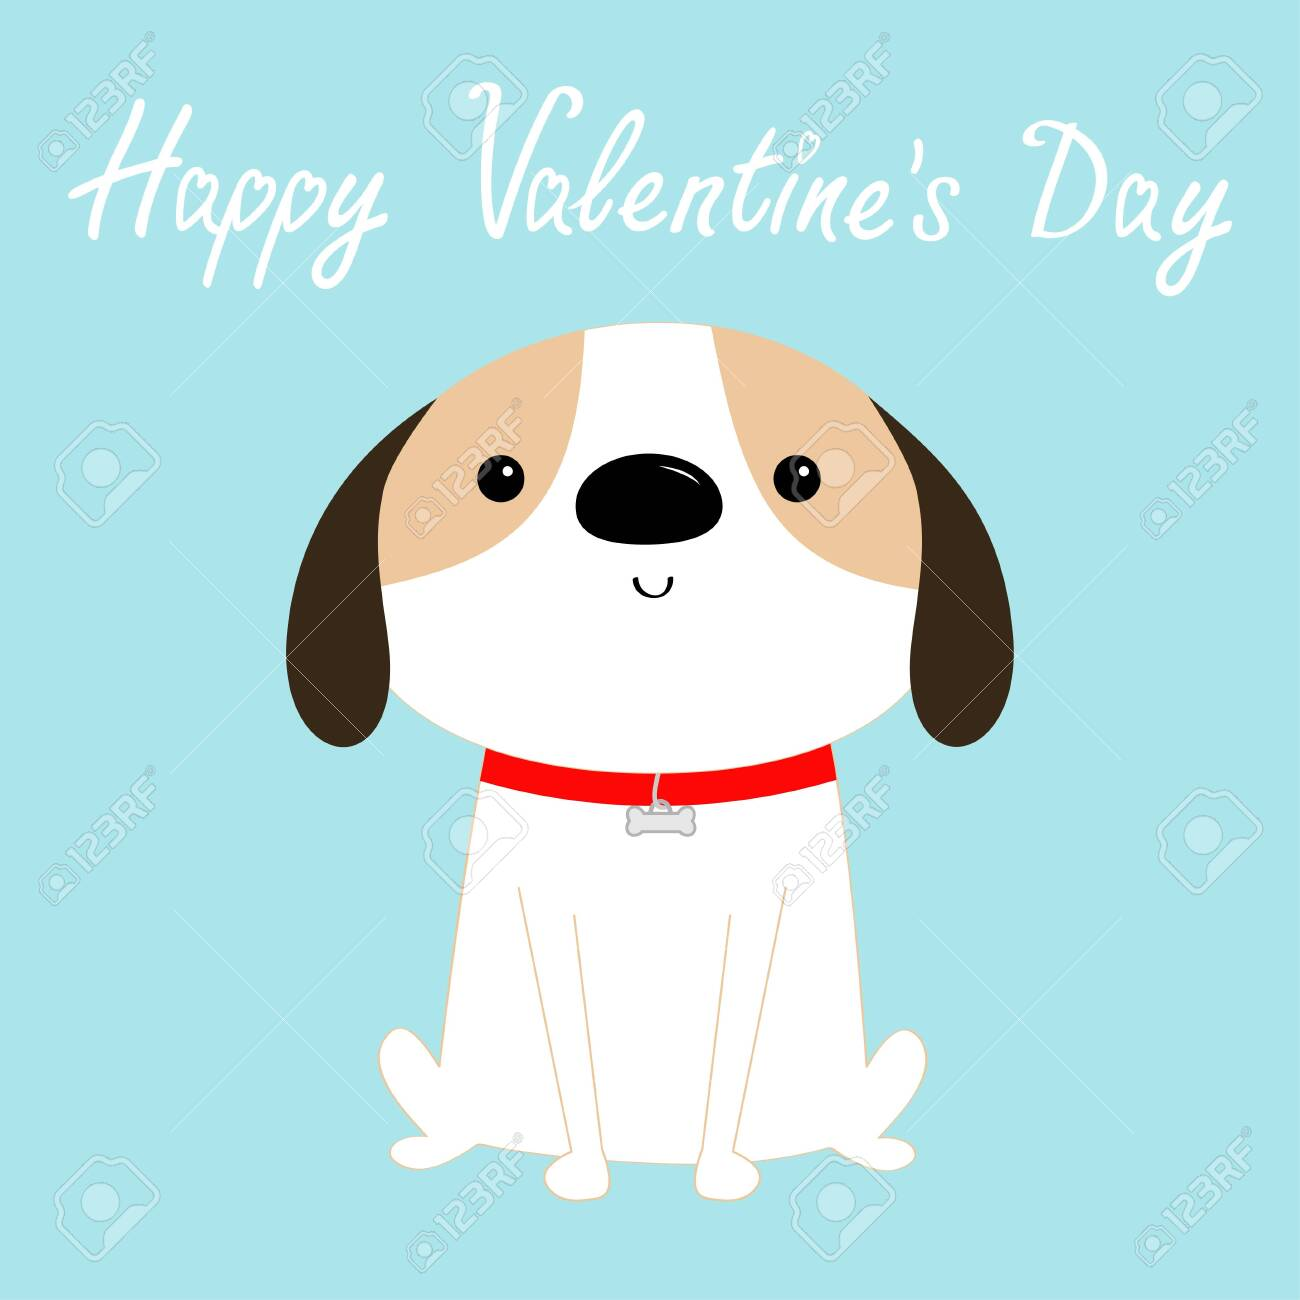 Happy Valentines Day Dog Sitting Red Collar White Puppy Pooch Royalty Free Cliparts Vectors And Stock Illustration Image 139279178